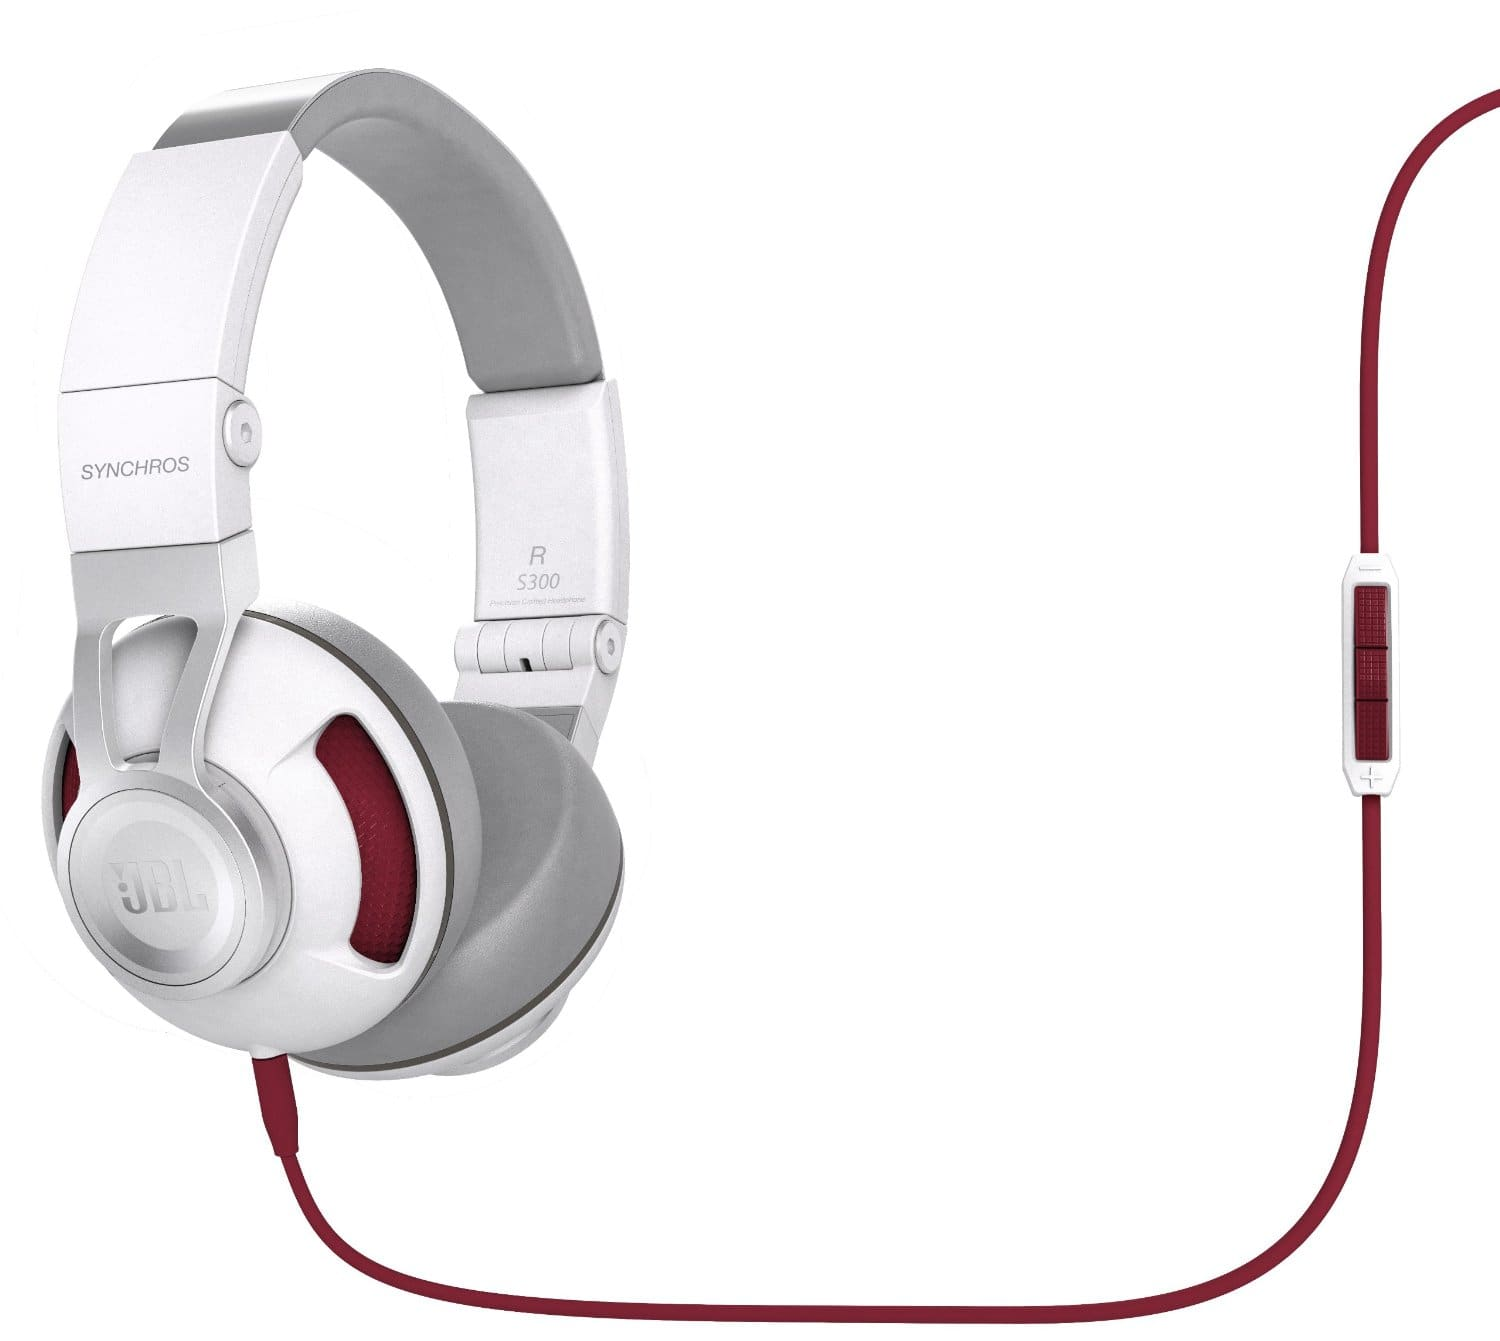 JBL Synchros S300 On-Ear White & Red Headphones with Built-In Android Remote + Microphone for $39.99 + Free Shipping @ Newegg.com